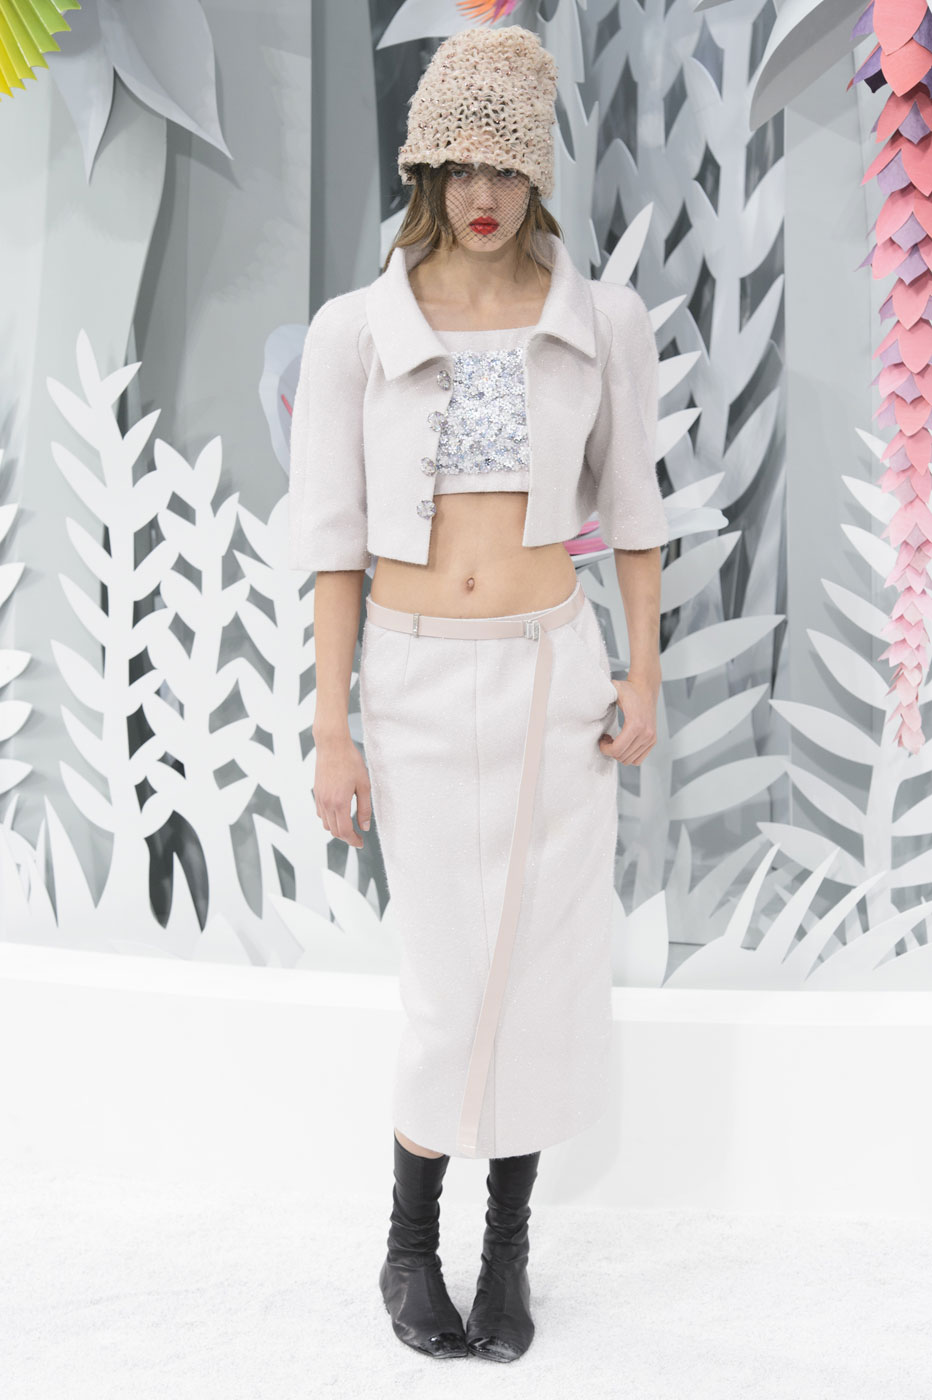 Chanel-fashion-runway-show-haute-couture-paris-spring-summer-2015-the-impression-054